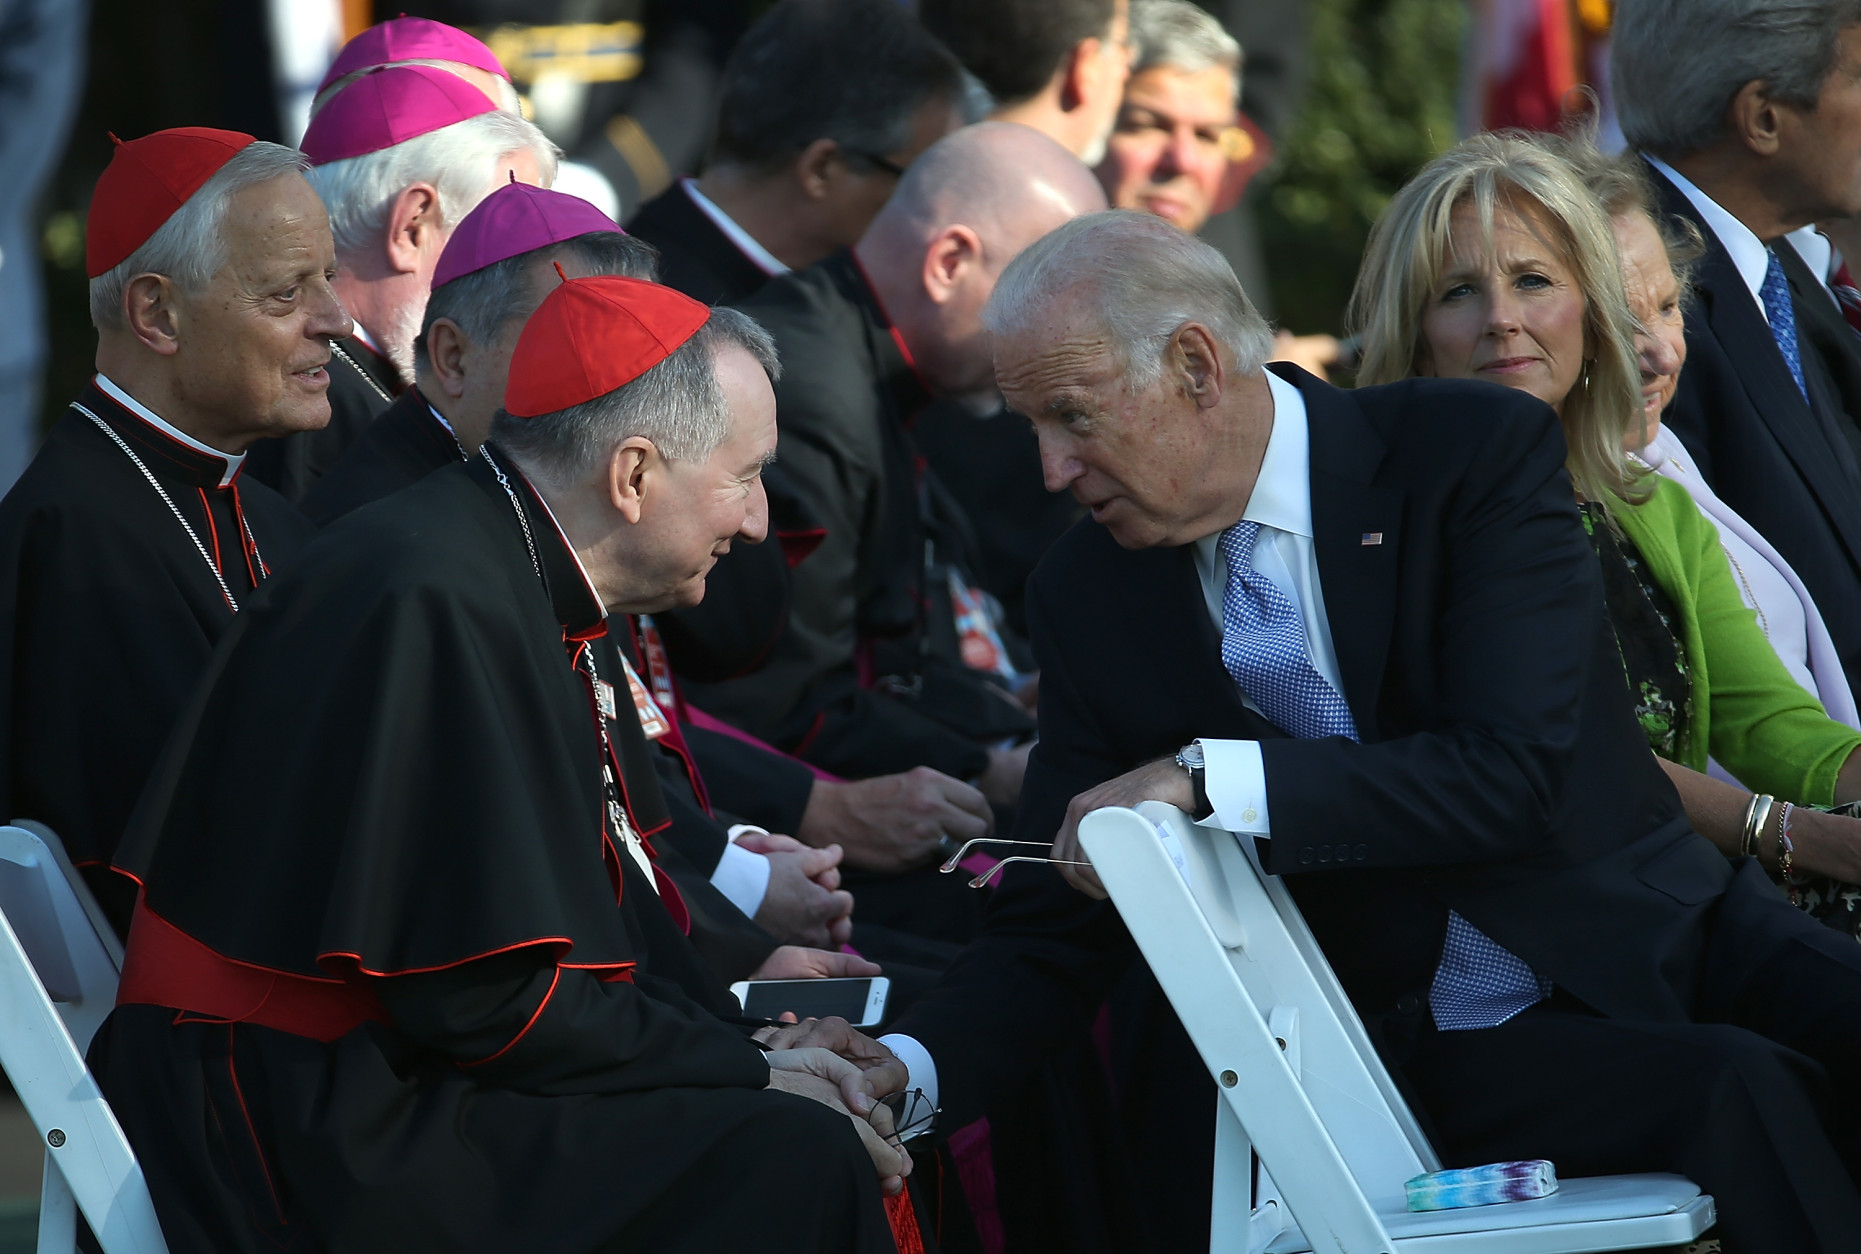 WASHINGTON, DC - SEPTEMBER 23:  U.S. Vice President Joe Biden speaks with members of the clergy before the start of an arrival ceremony for Pope Francis at the White House on September 23, 2015 in Washington, DC. The Pope begins his first trip to the United States at the White House followed by a visit to St. Matthew's Cathedral, and will then hold a Mass on the grounds of the Basilica of the National Shrine of the Immaculate Conception.  (Photo by Win McNamee/Getty Images)